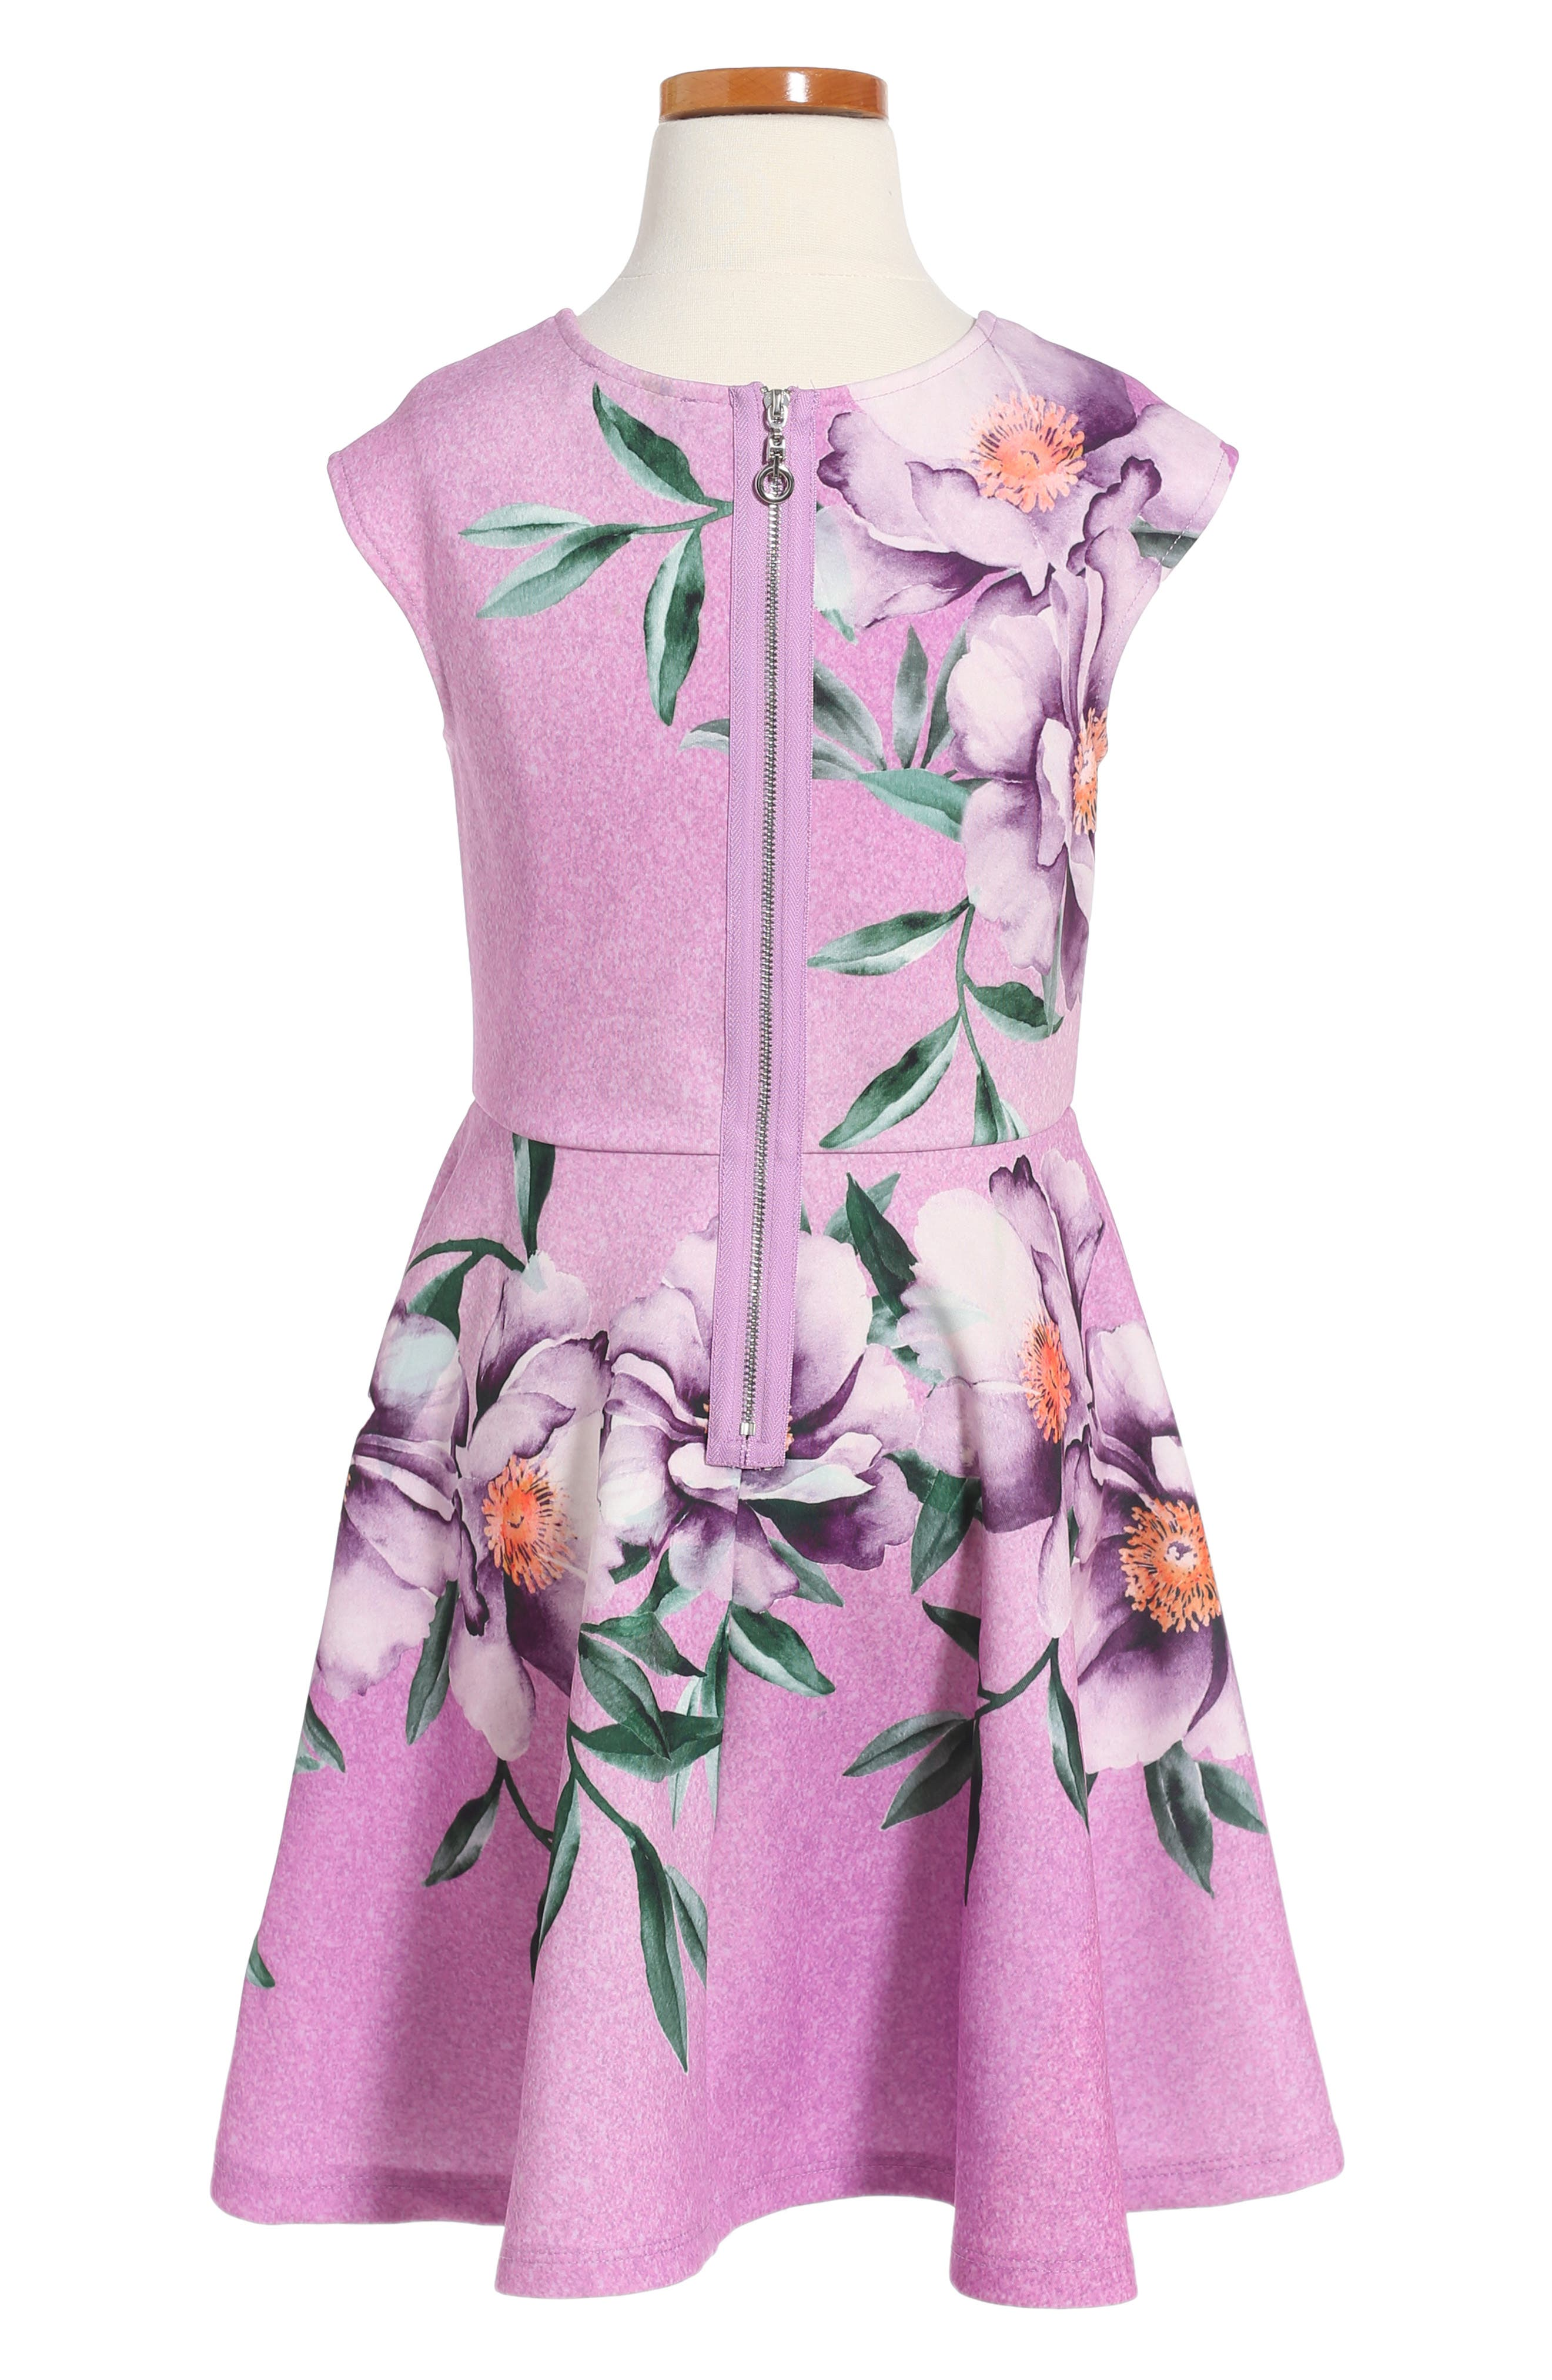 Alternate Image 2  - Hannah Banana Floral Print Skater Dress (Toddler Girls, Little Girls & Big Girls)